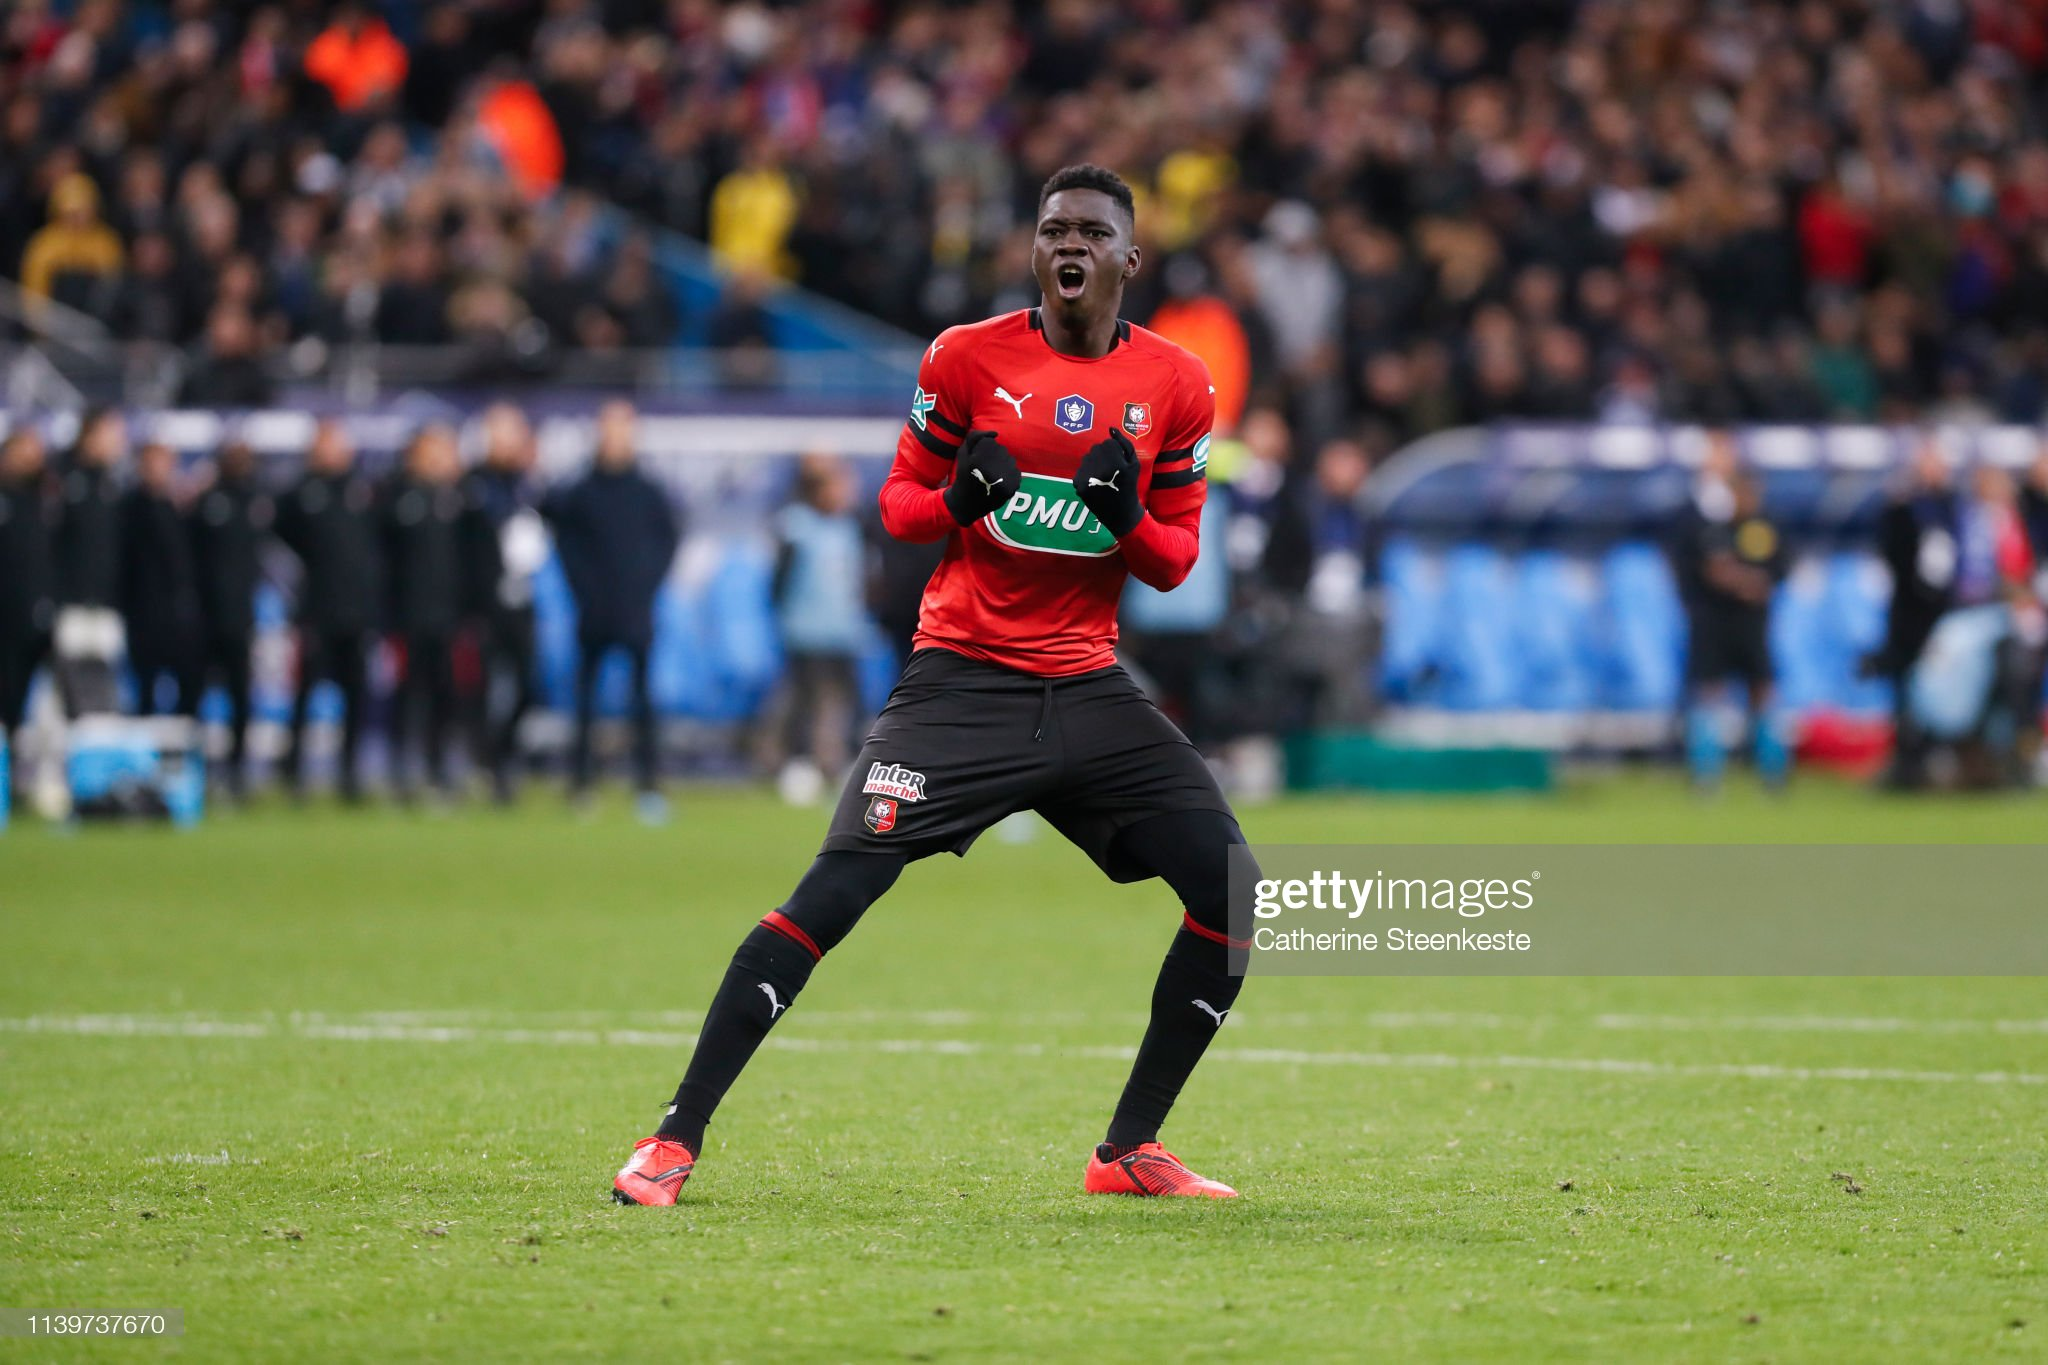 Stade Rennais vs Paris Saint-Germain - Coupe de France Final : News Photo